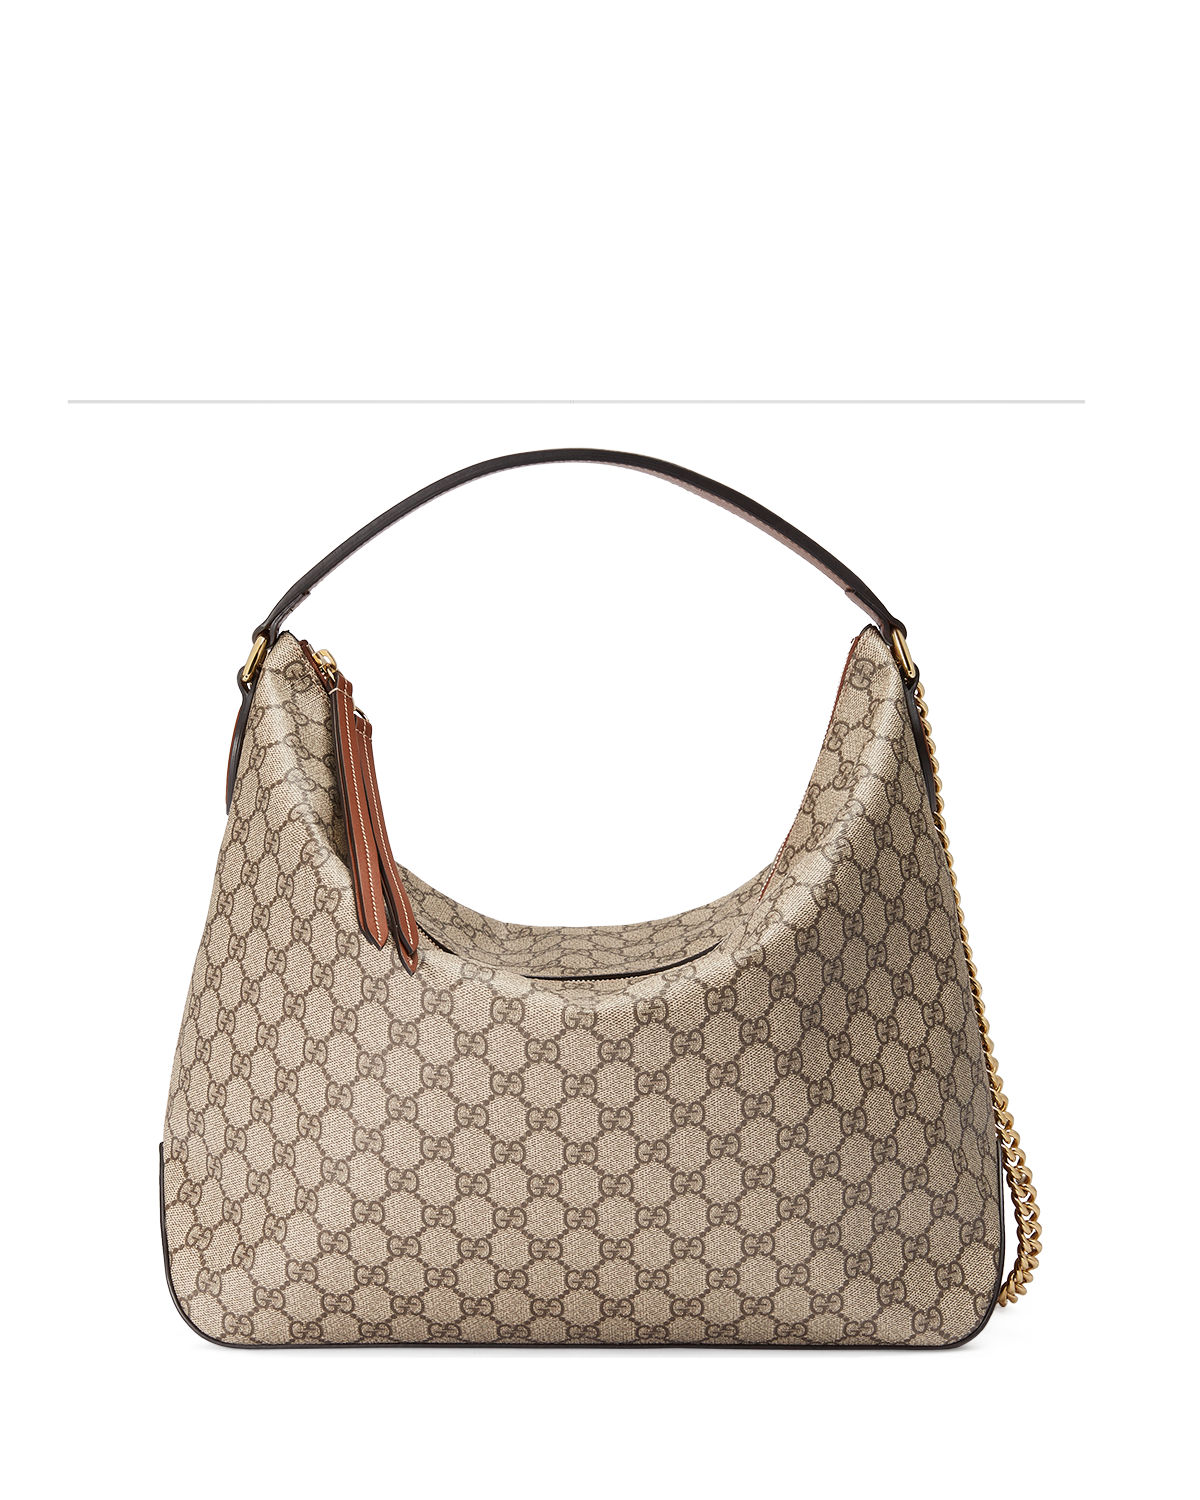 6de12dbf9 Gucci Linea A Large GG Supreme Canvas Hobo Bag | Neiman Marcus